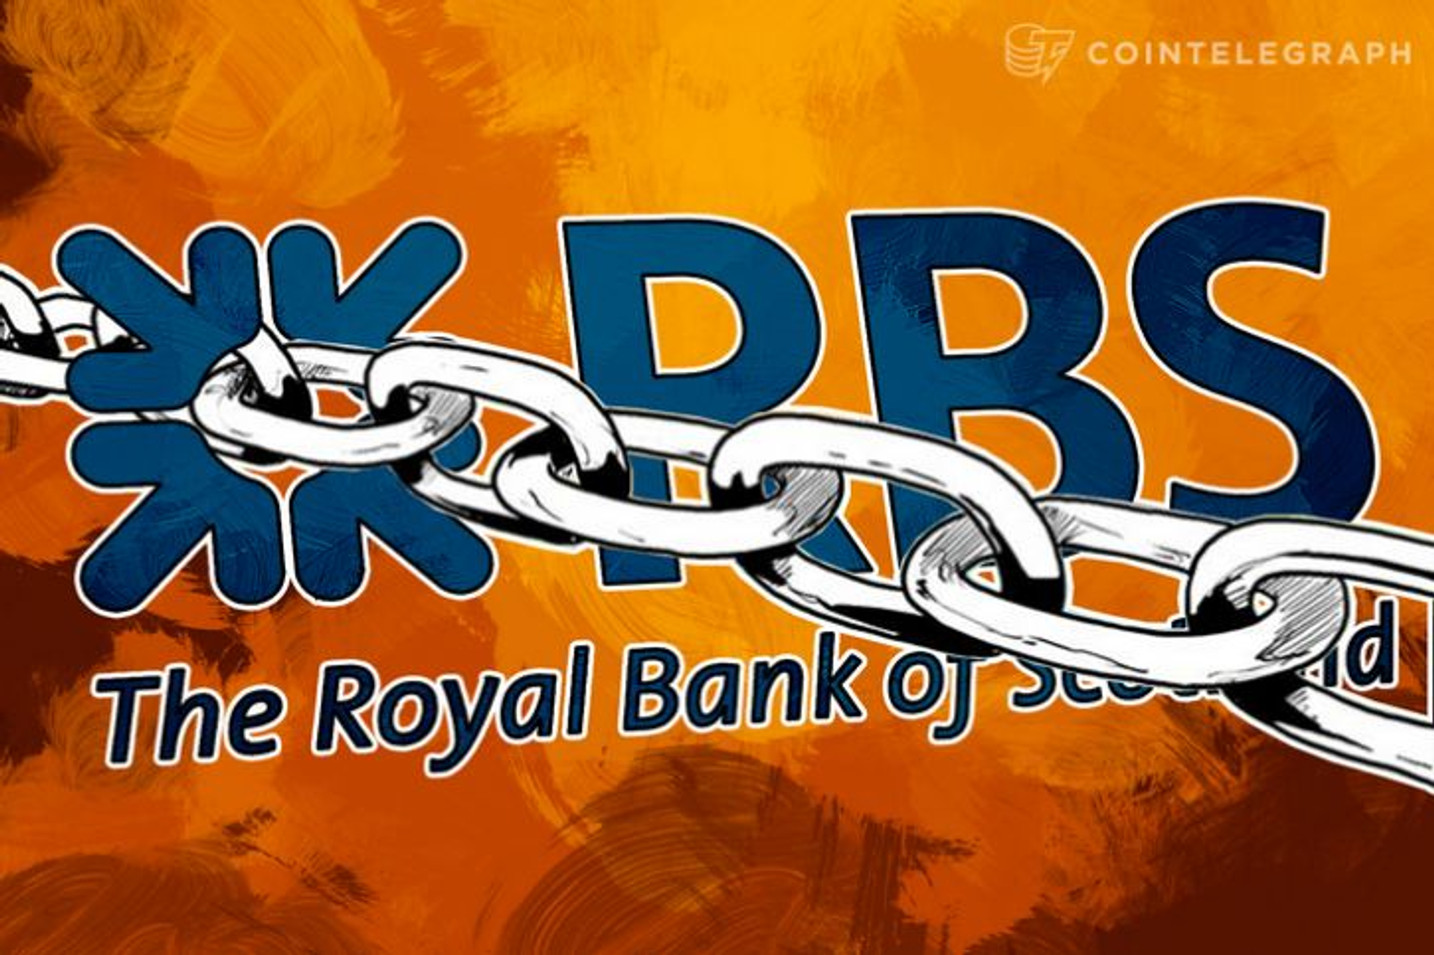 Royal Bank of Scotland vodi u Blockchain trci